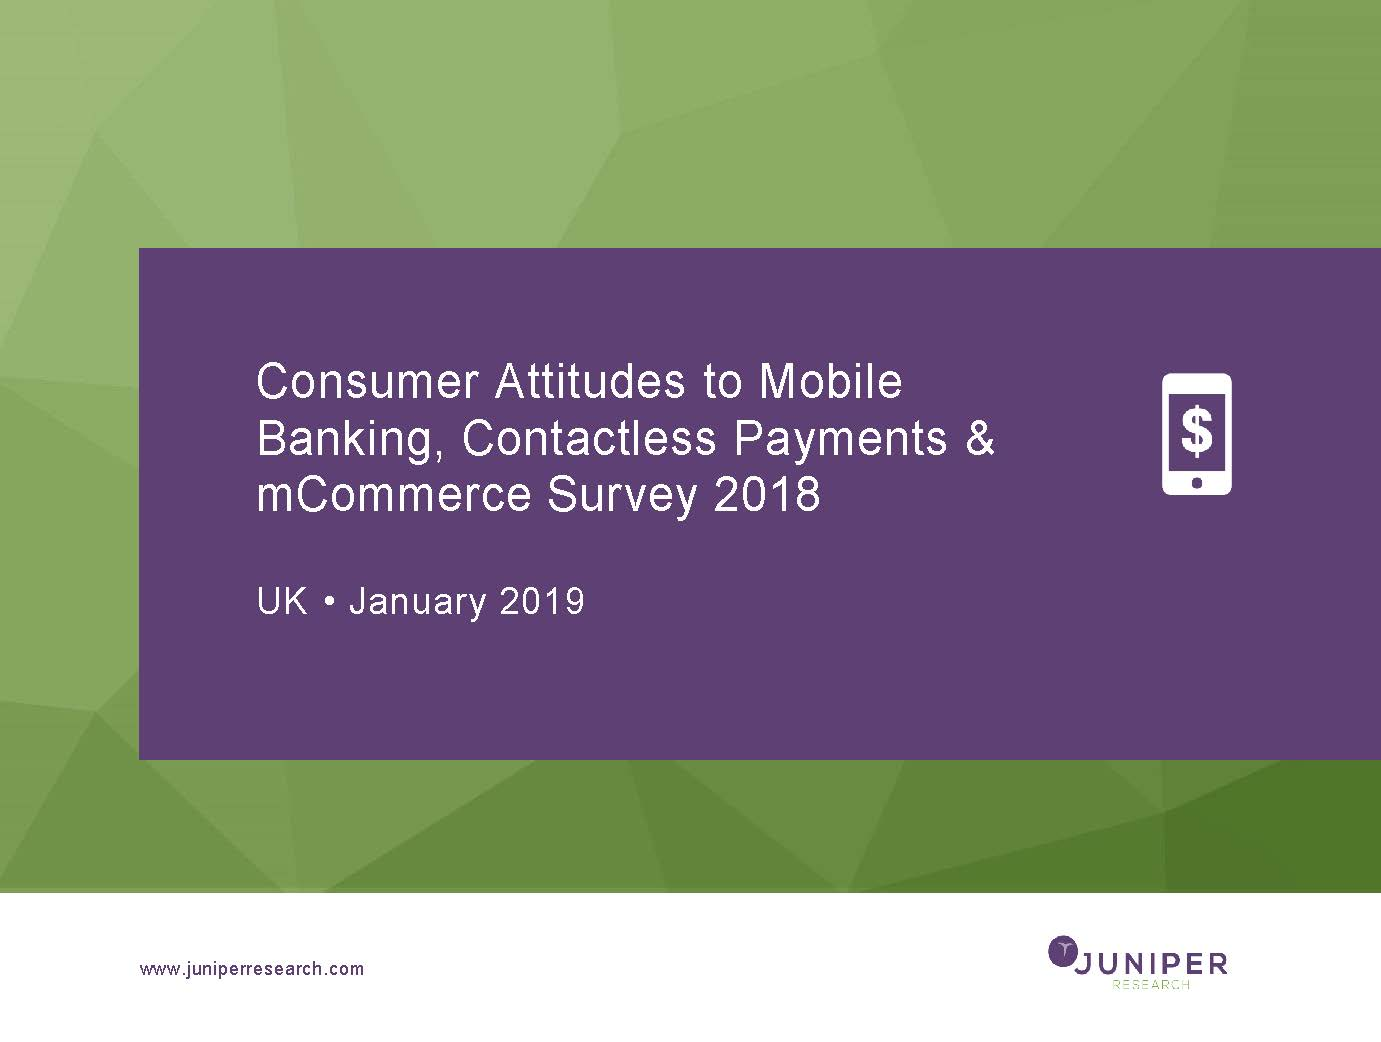 Consumer Attitudes to Mobile Banking, Contactless Payments & mCommerce January 2019 Survey: UK